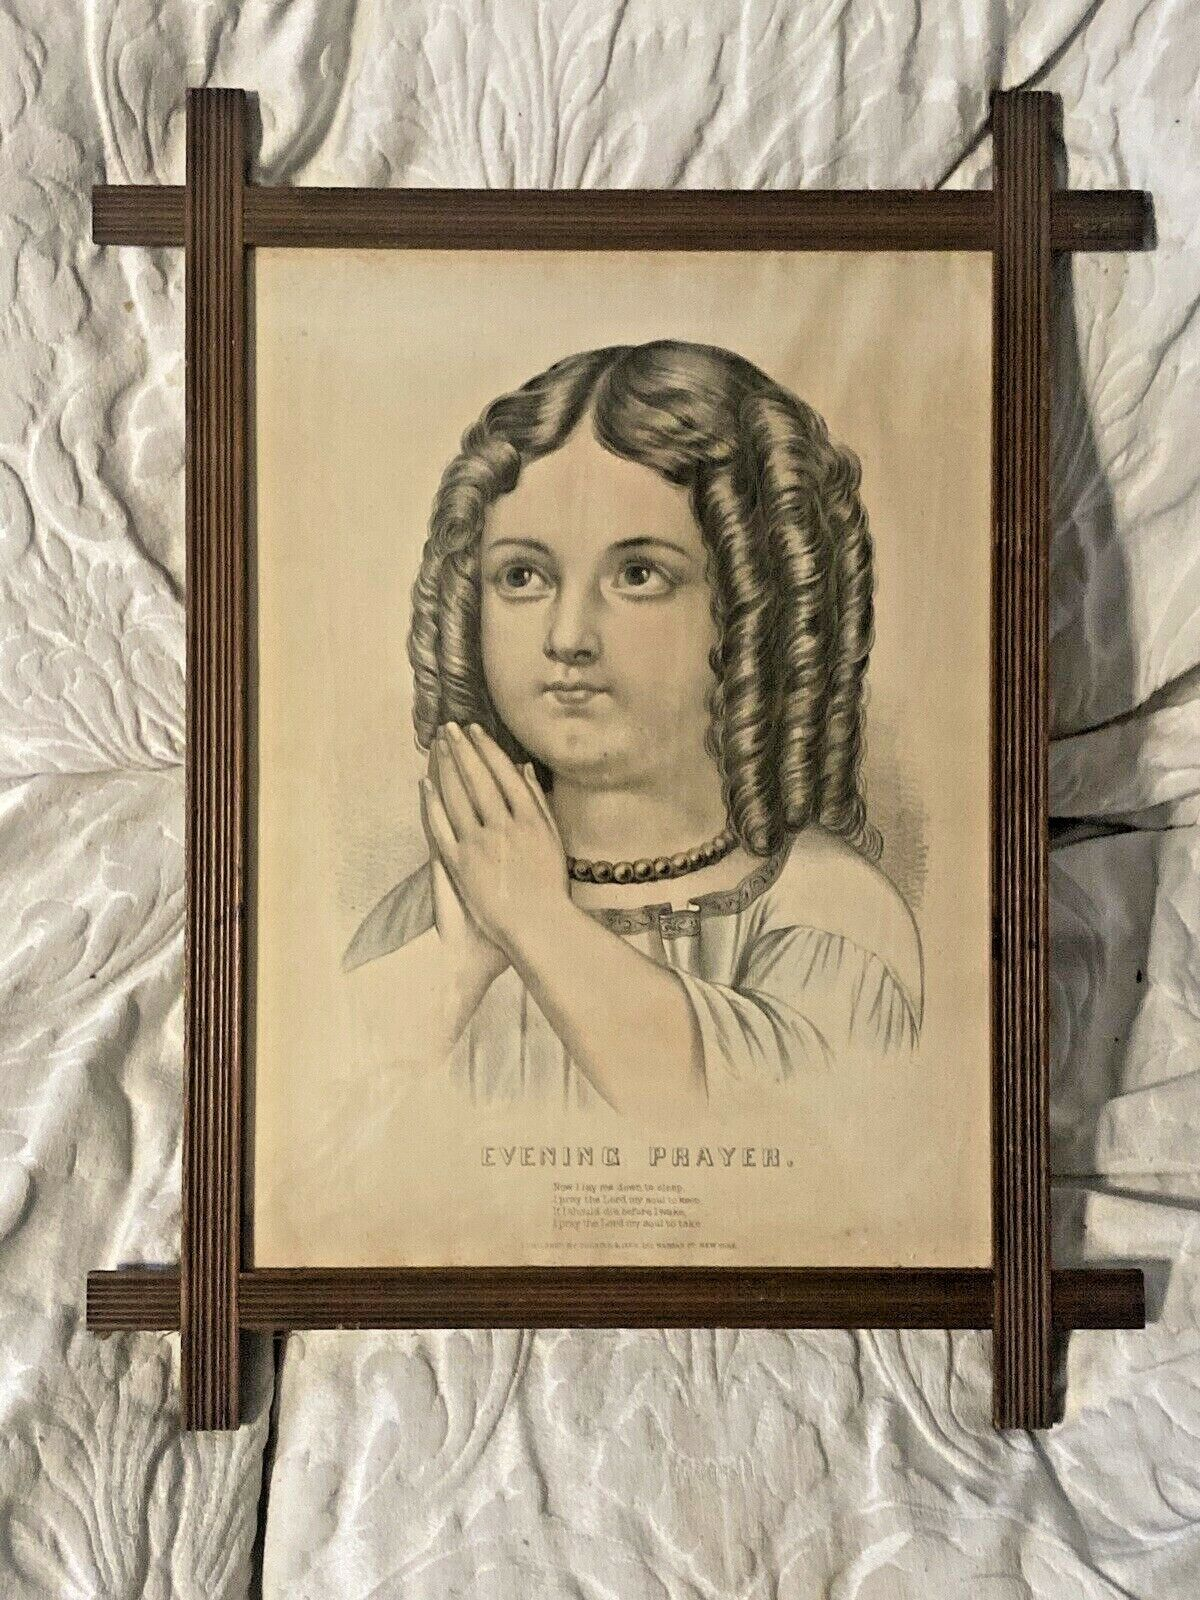 Evening Prayer Currier Ives 1870s Victorian Childrens Print Little Girl Framed - $49.00